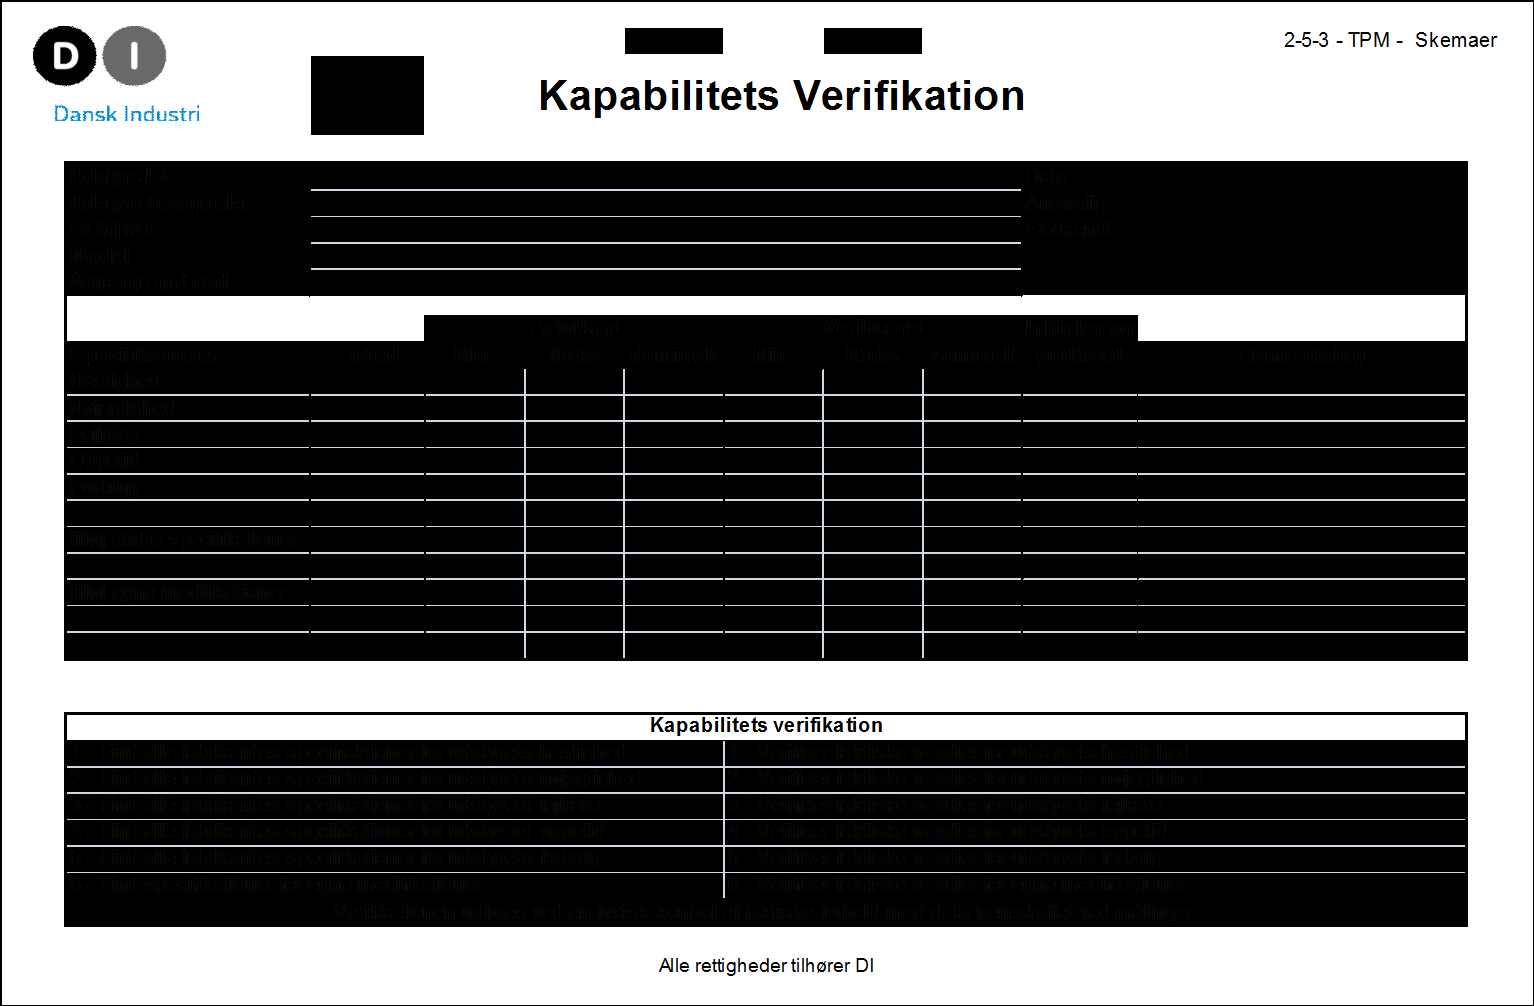 -metode - fase 2 (1 2) Verifikation for kapabilitet, skema Hastighed